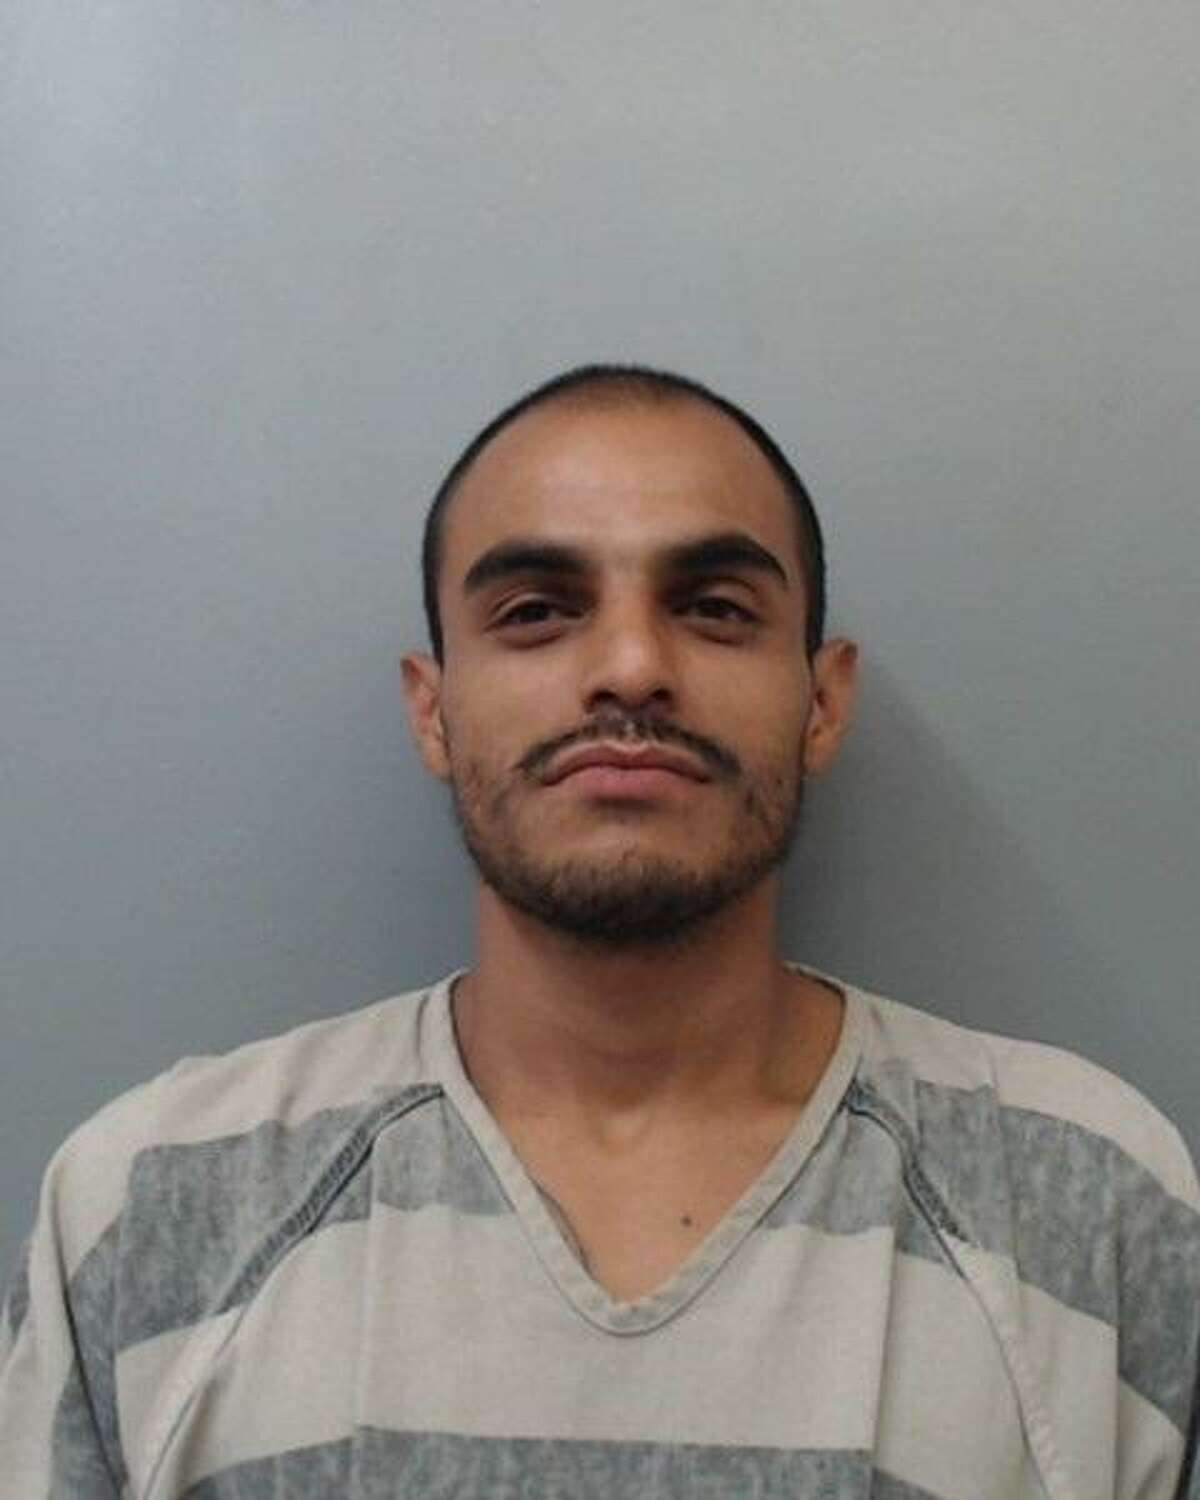 Arturo Rafael Zavala Jr., 27, was charged with theft of property.